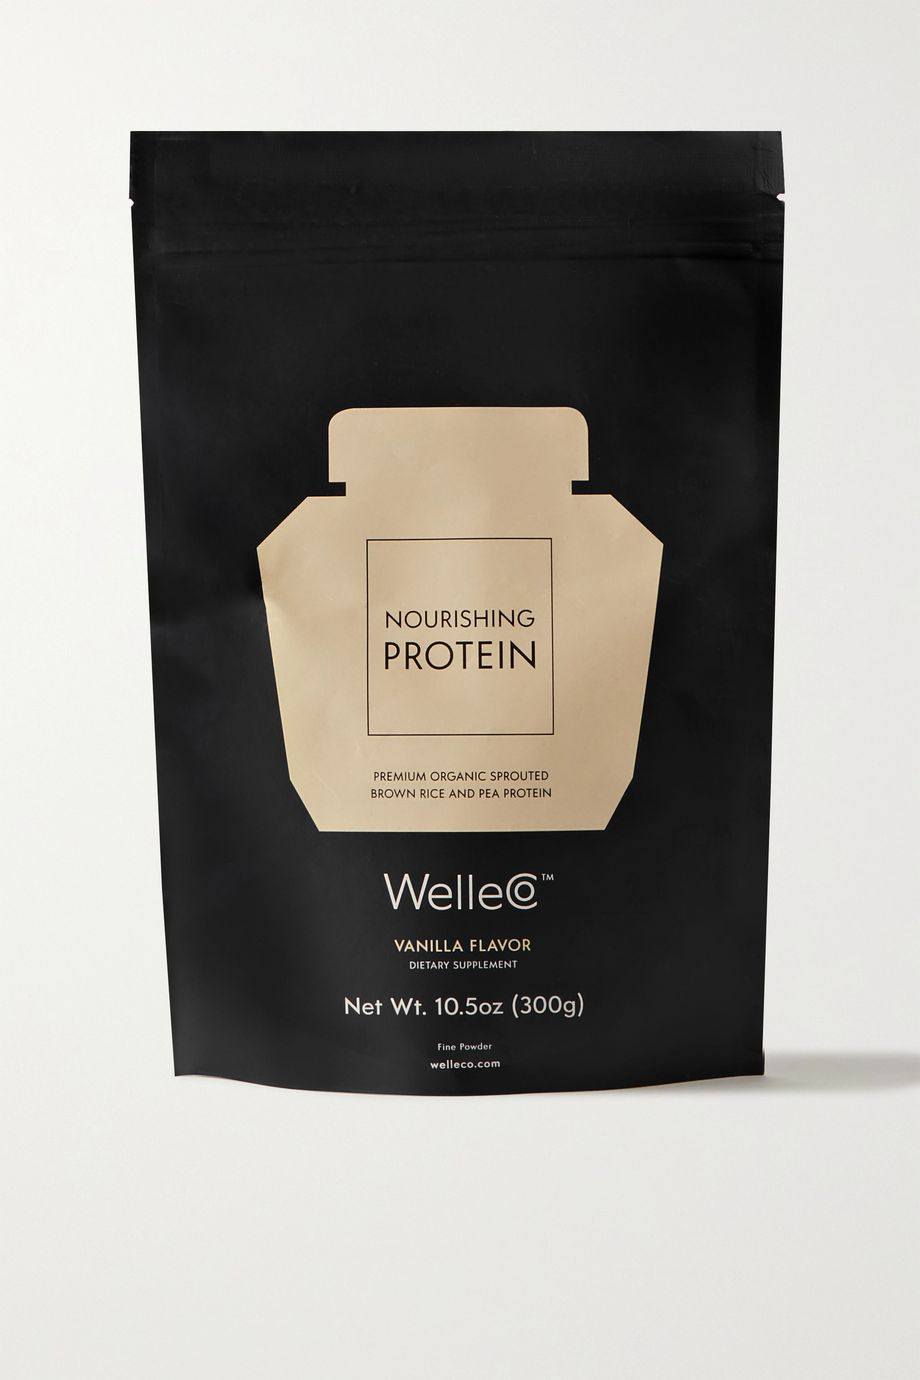 WelleCo Nourishing Protein - Natural Vanilla, 300g